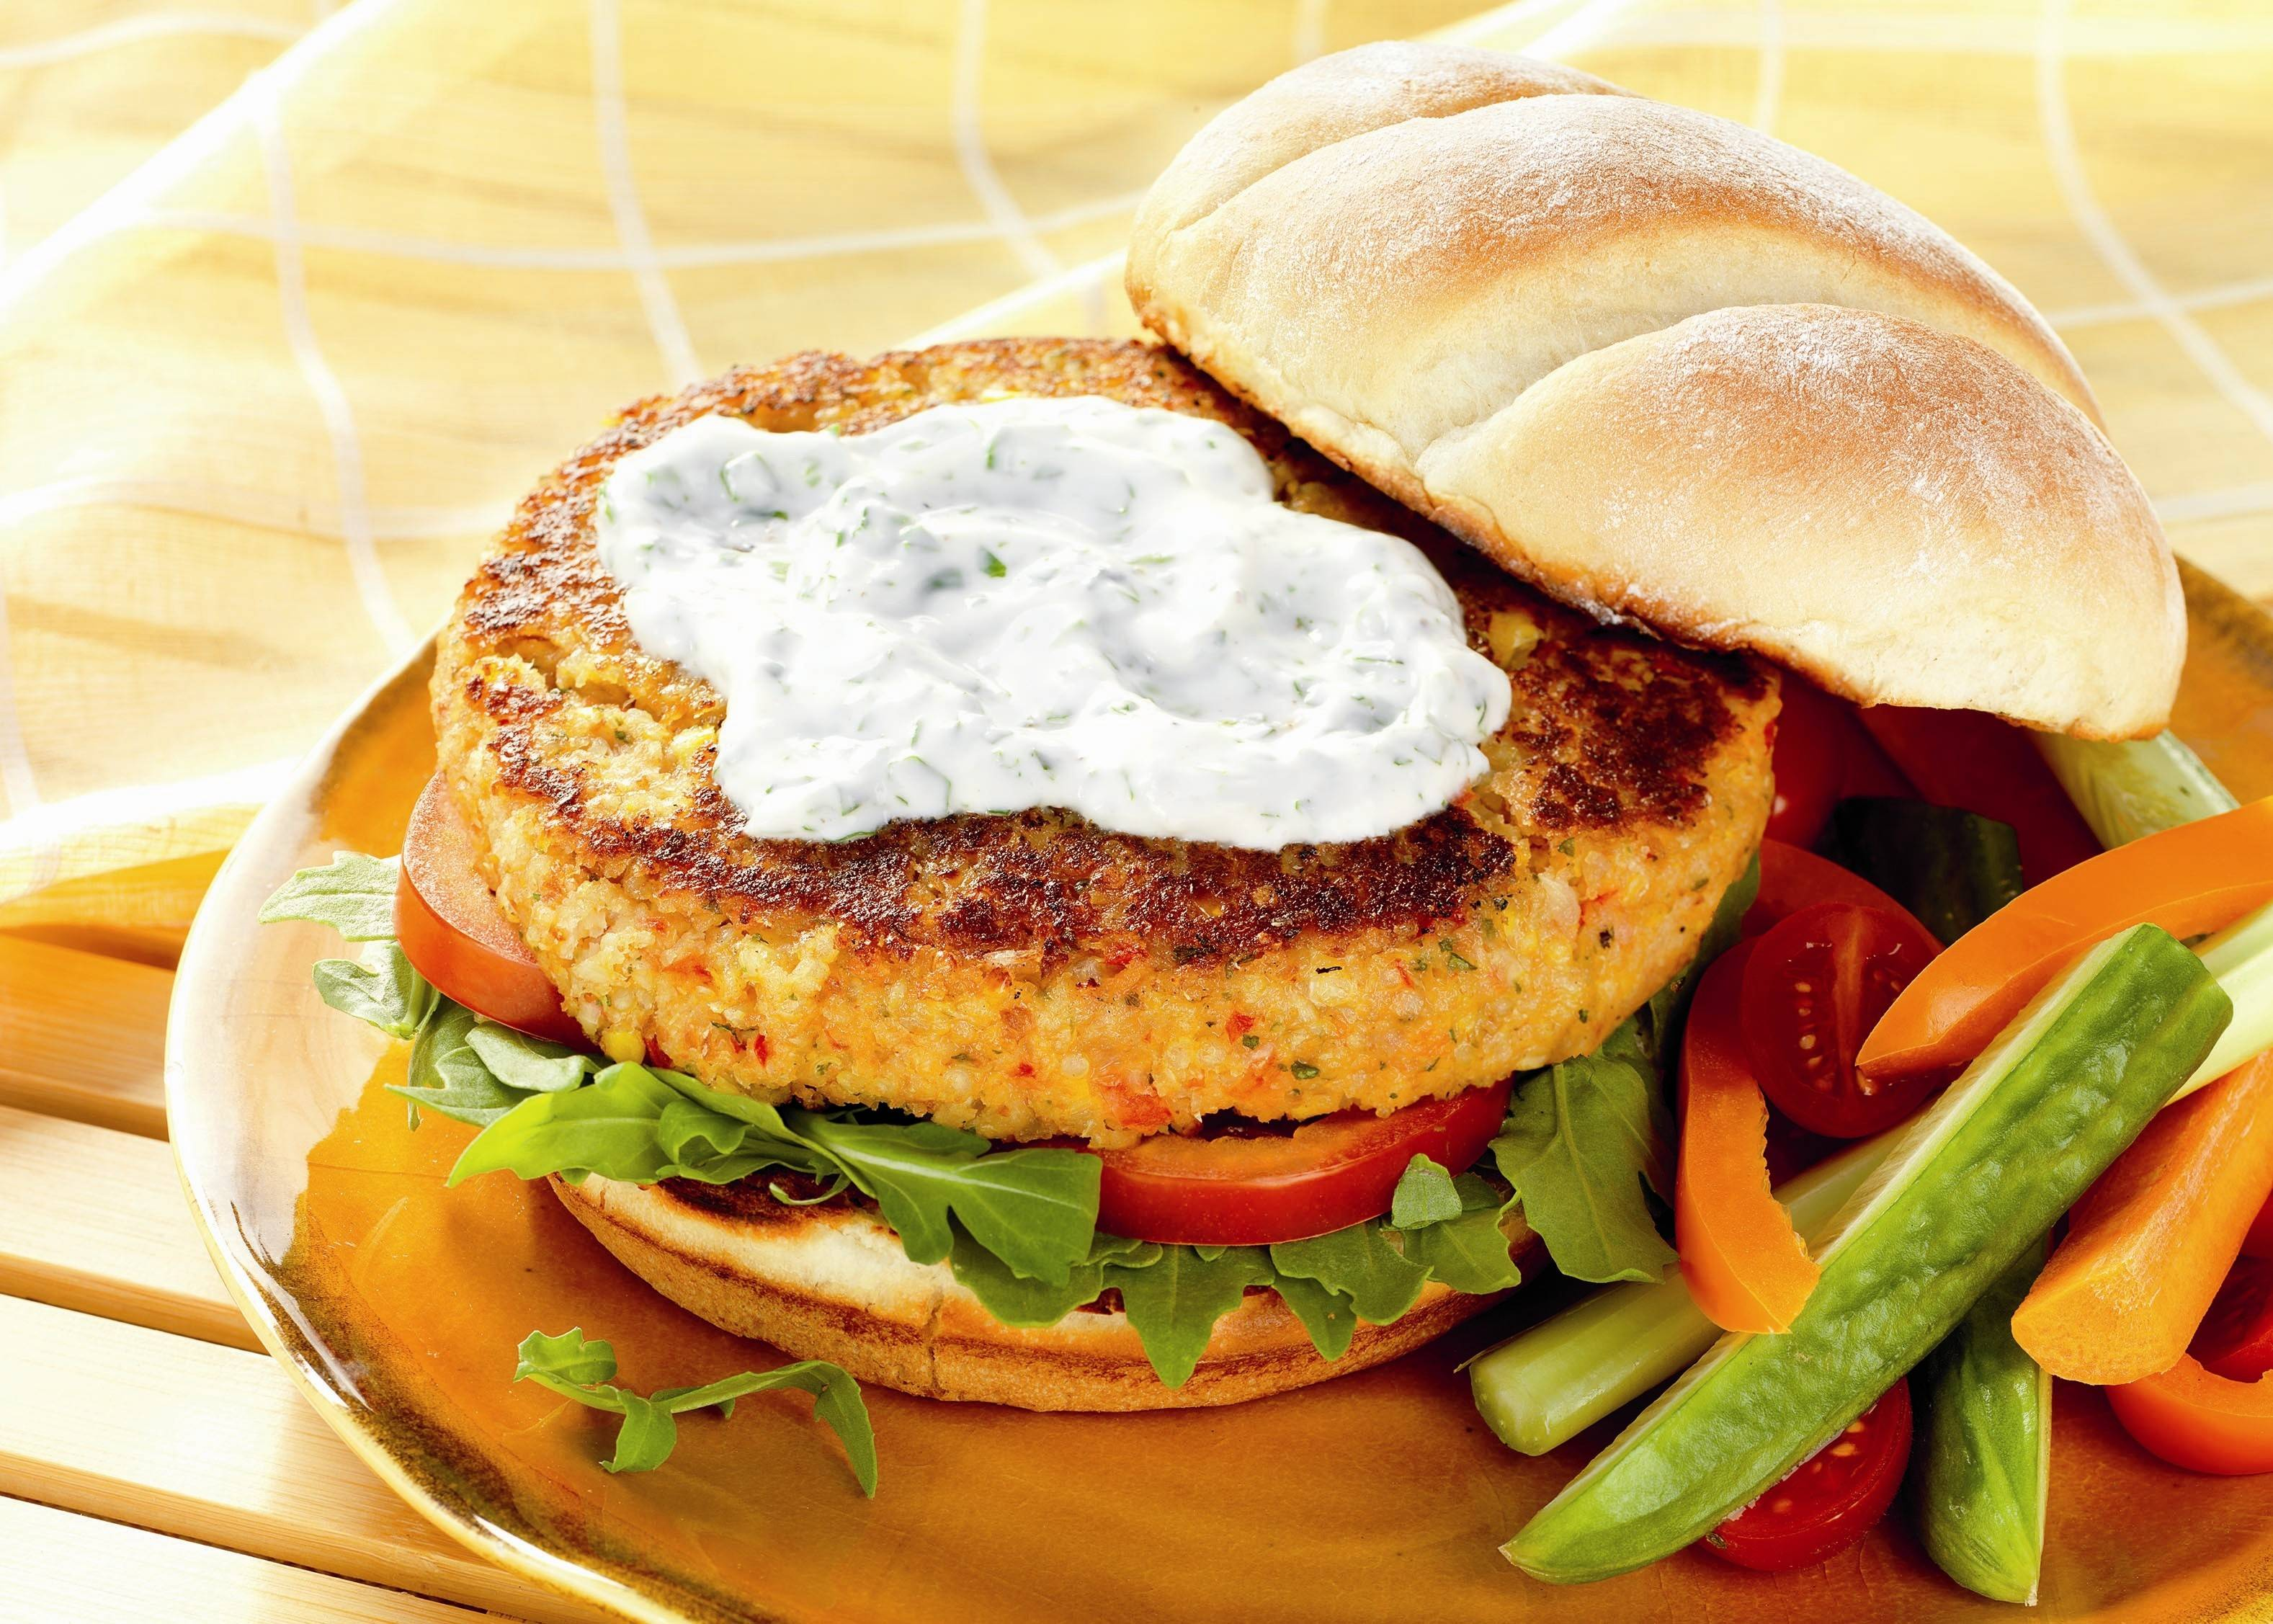 Quinoa and Pinto Bean Burgers with Yogurt Sauce